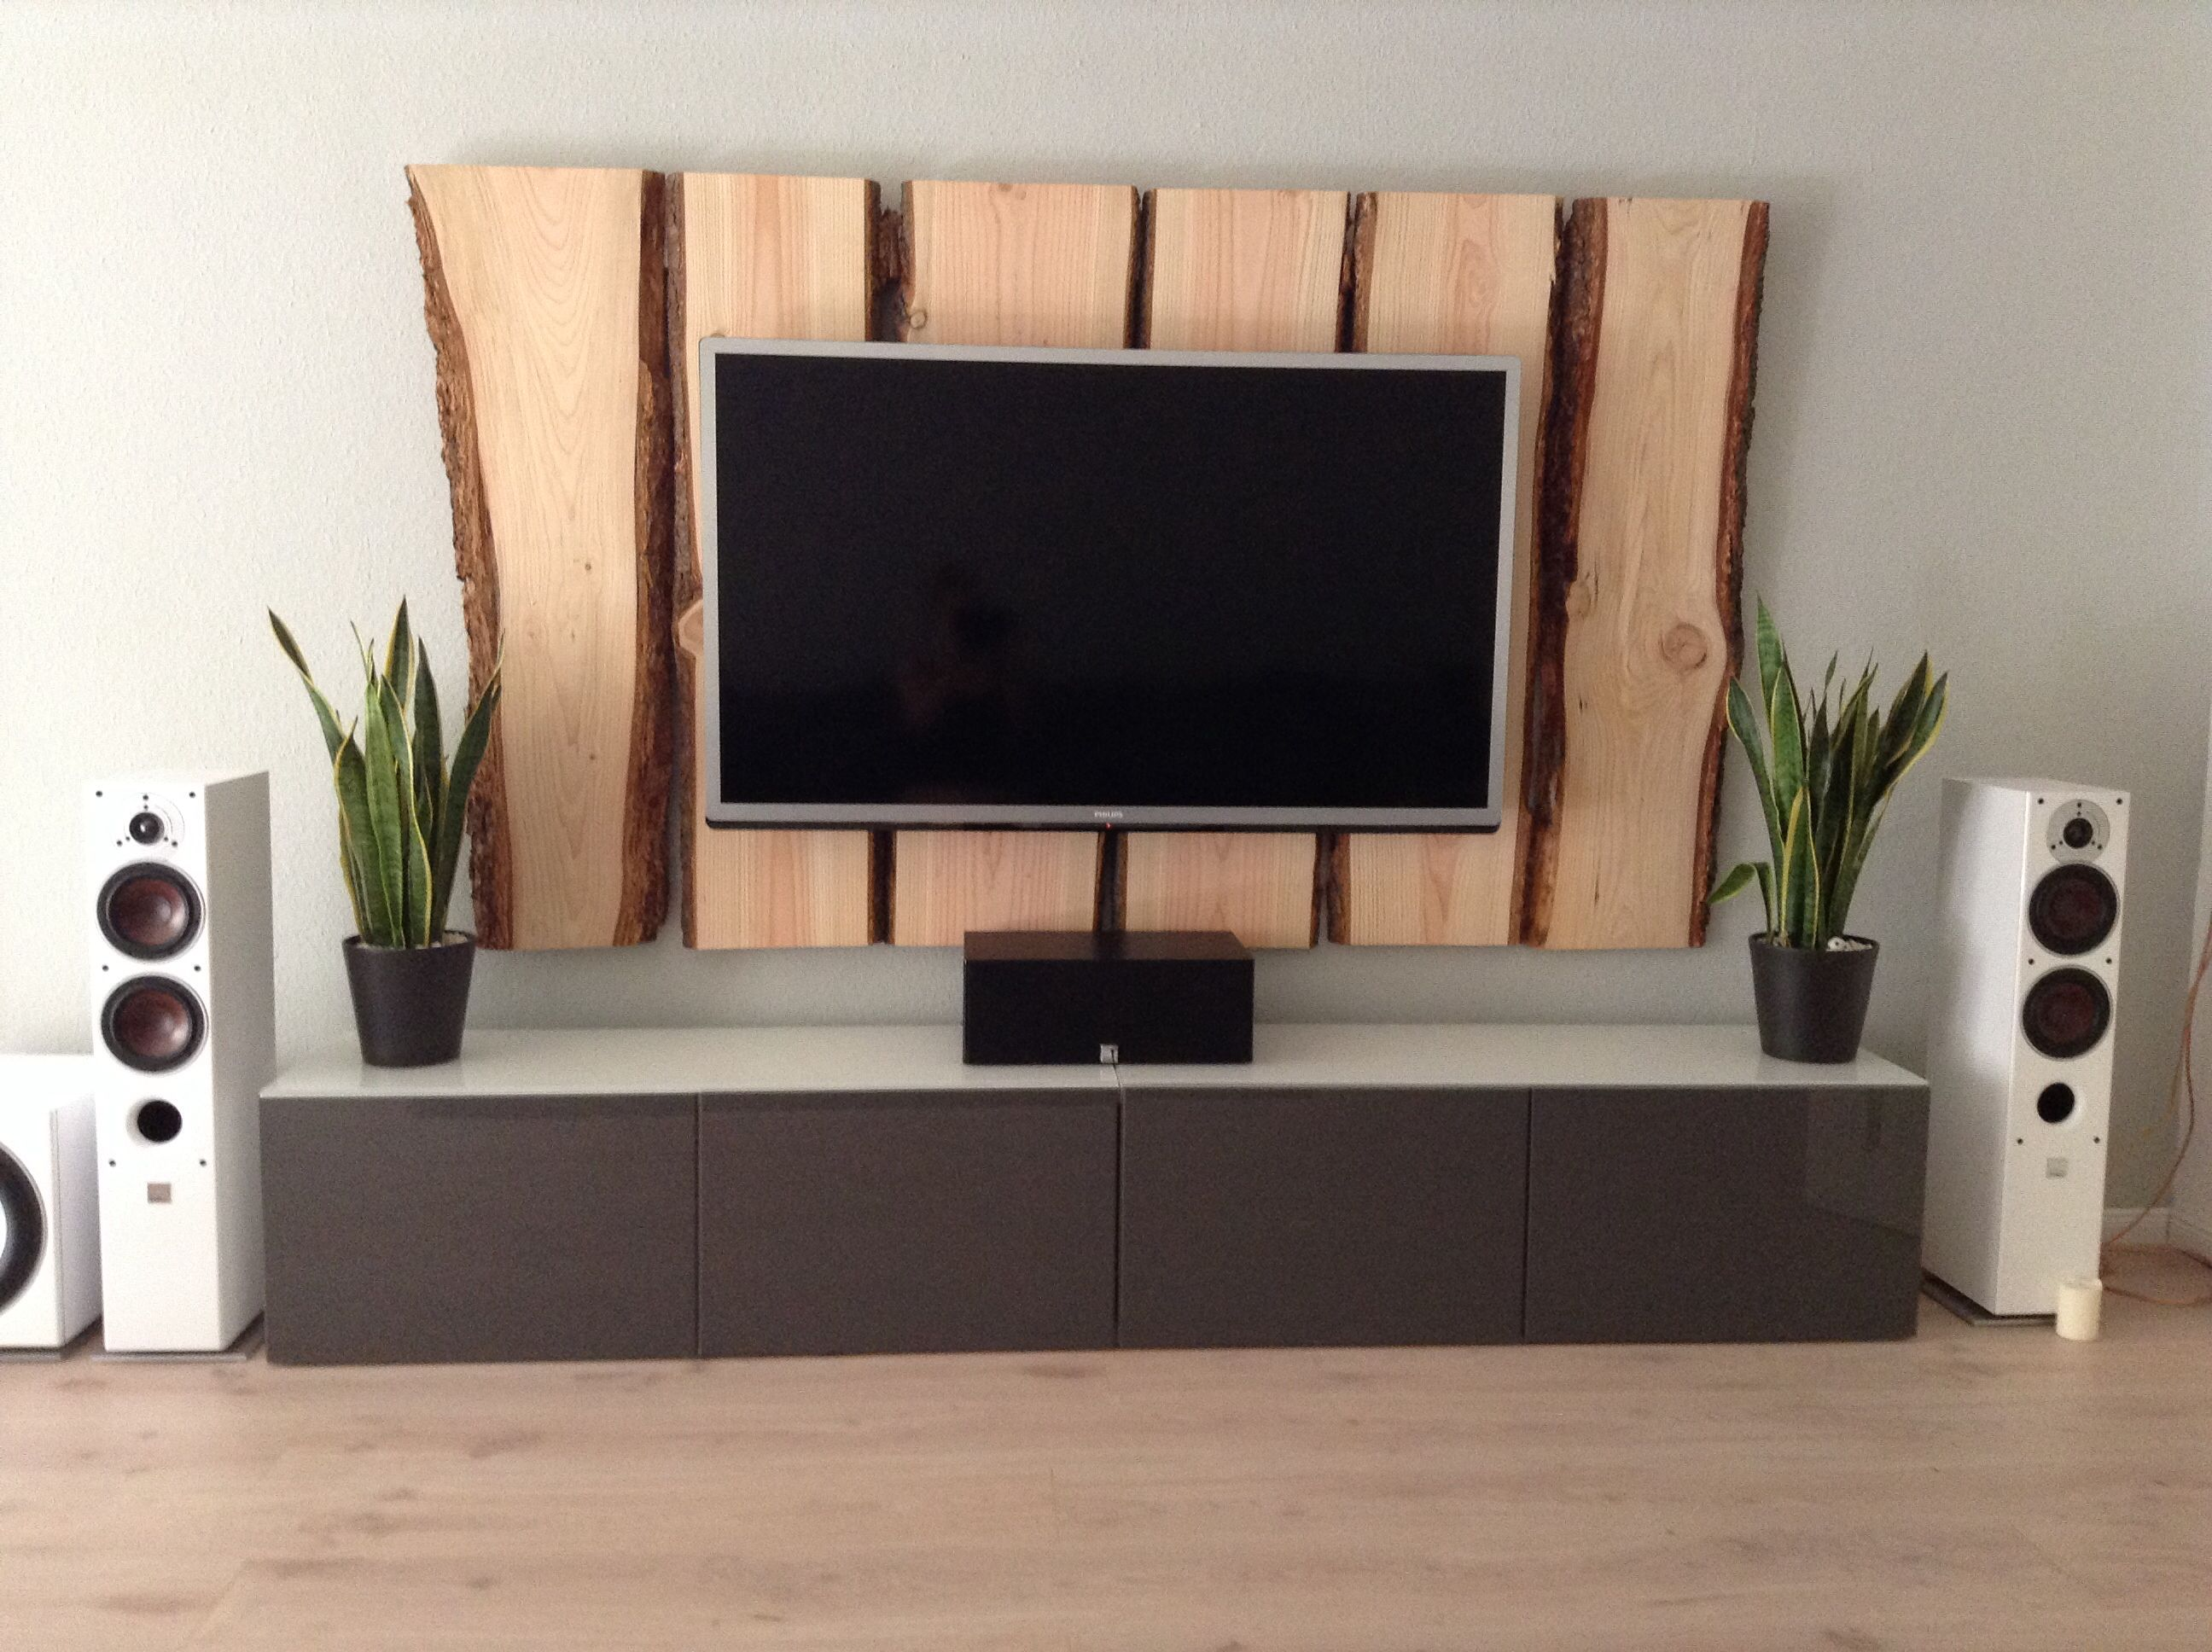 holz tv wand tv wall wood deko und so pinterest fernsehwand wohnzimmer und tv w nde. Black Bedroom Furniture Sets. Home Design Ideas